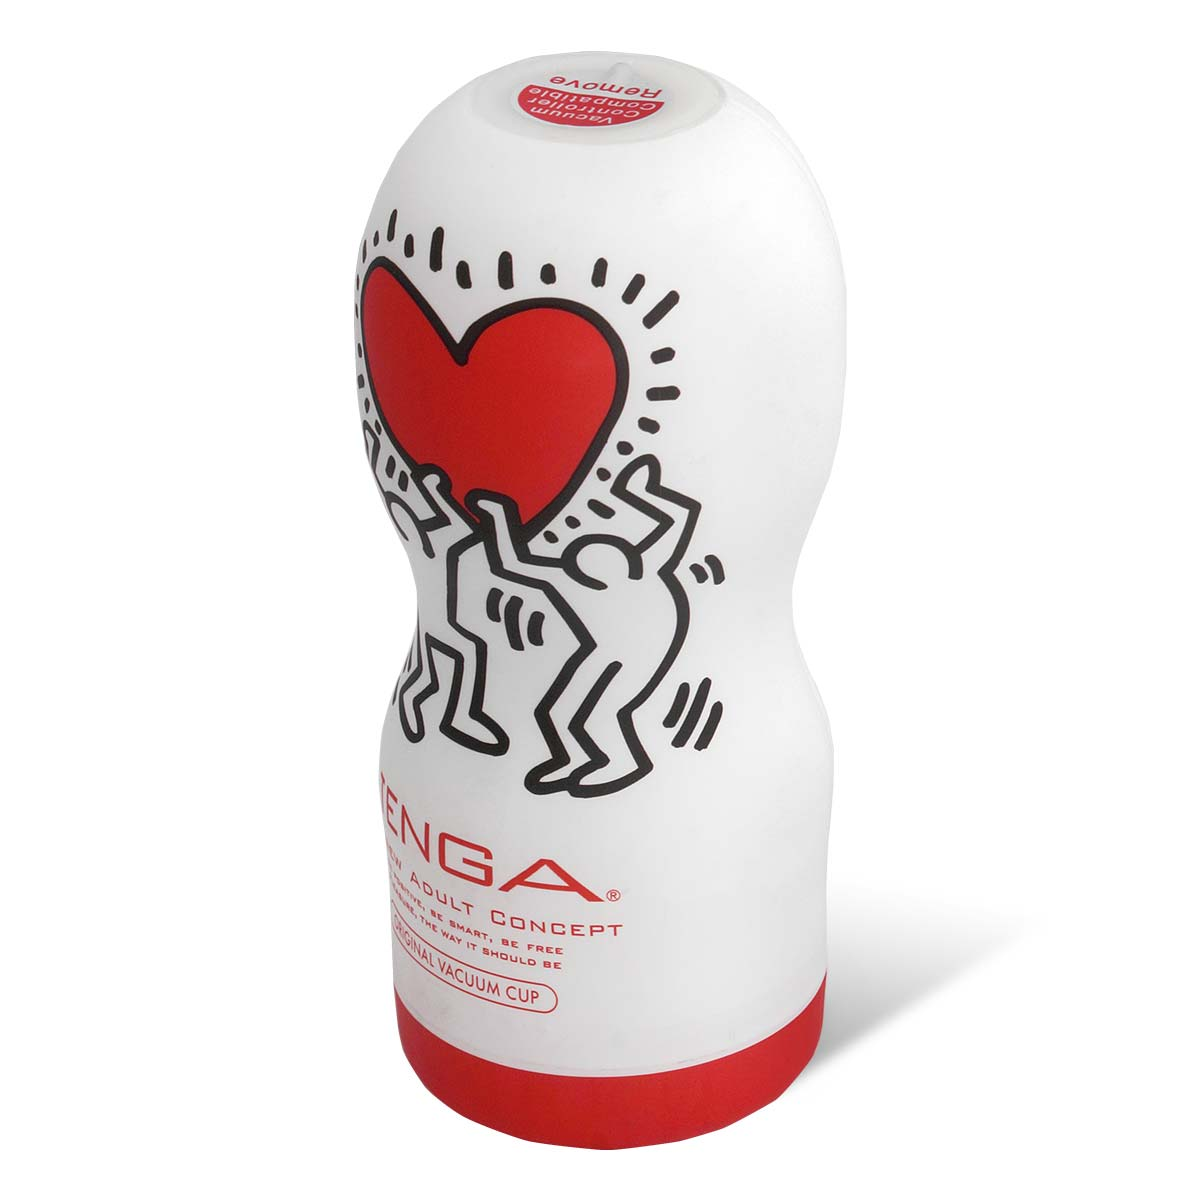 KHC-101 Deep Throat Cup Keith Haring edition